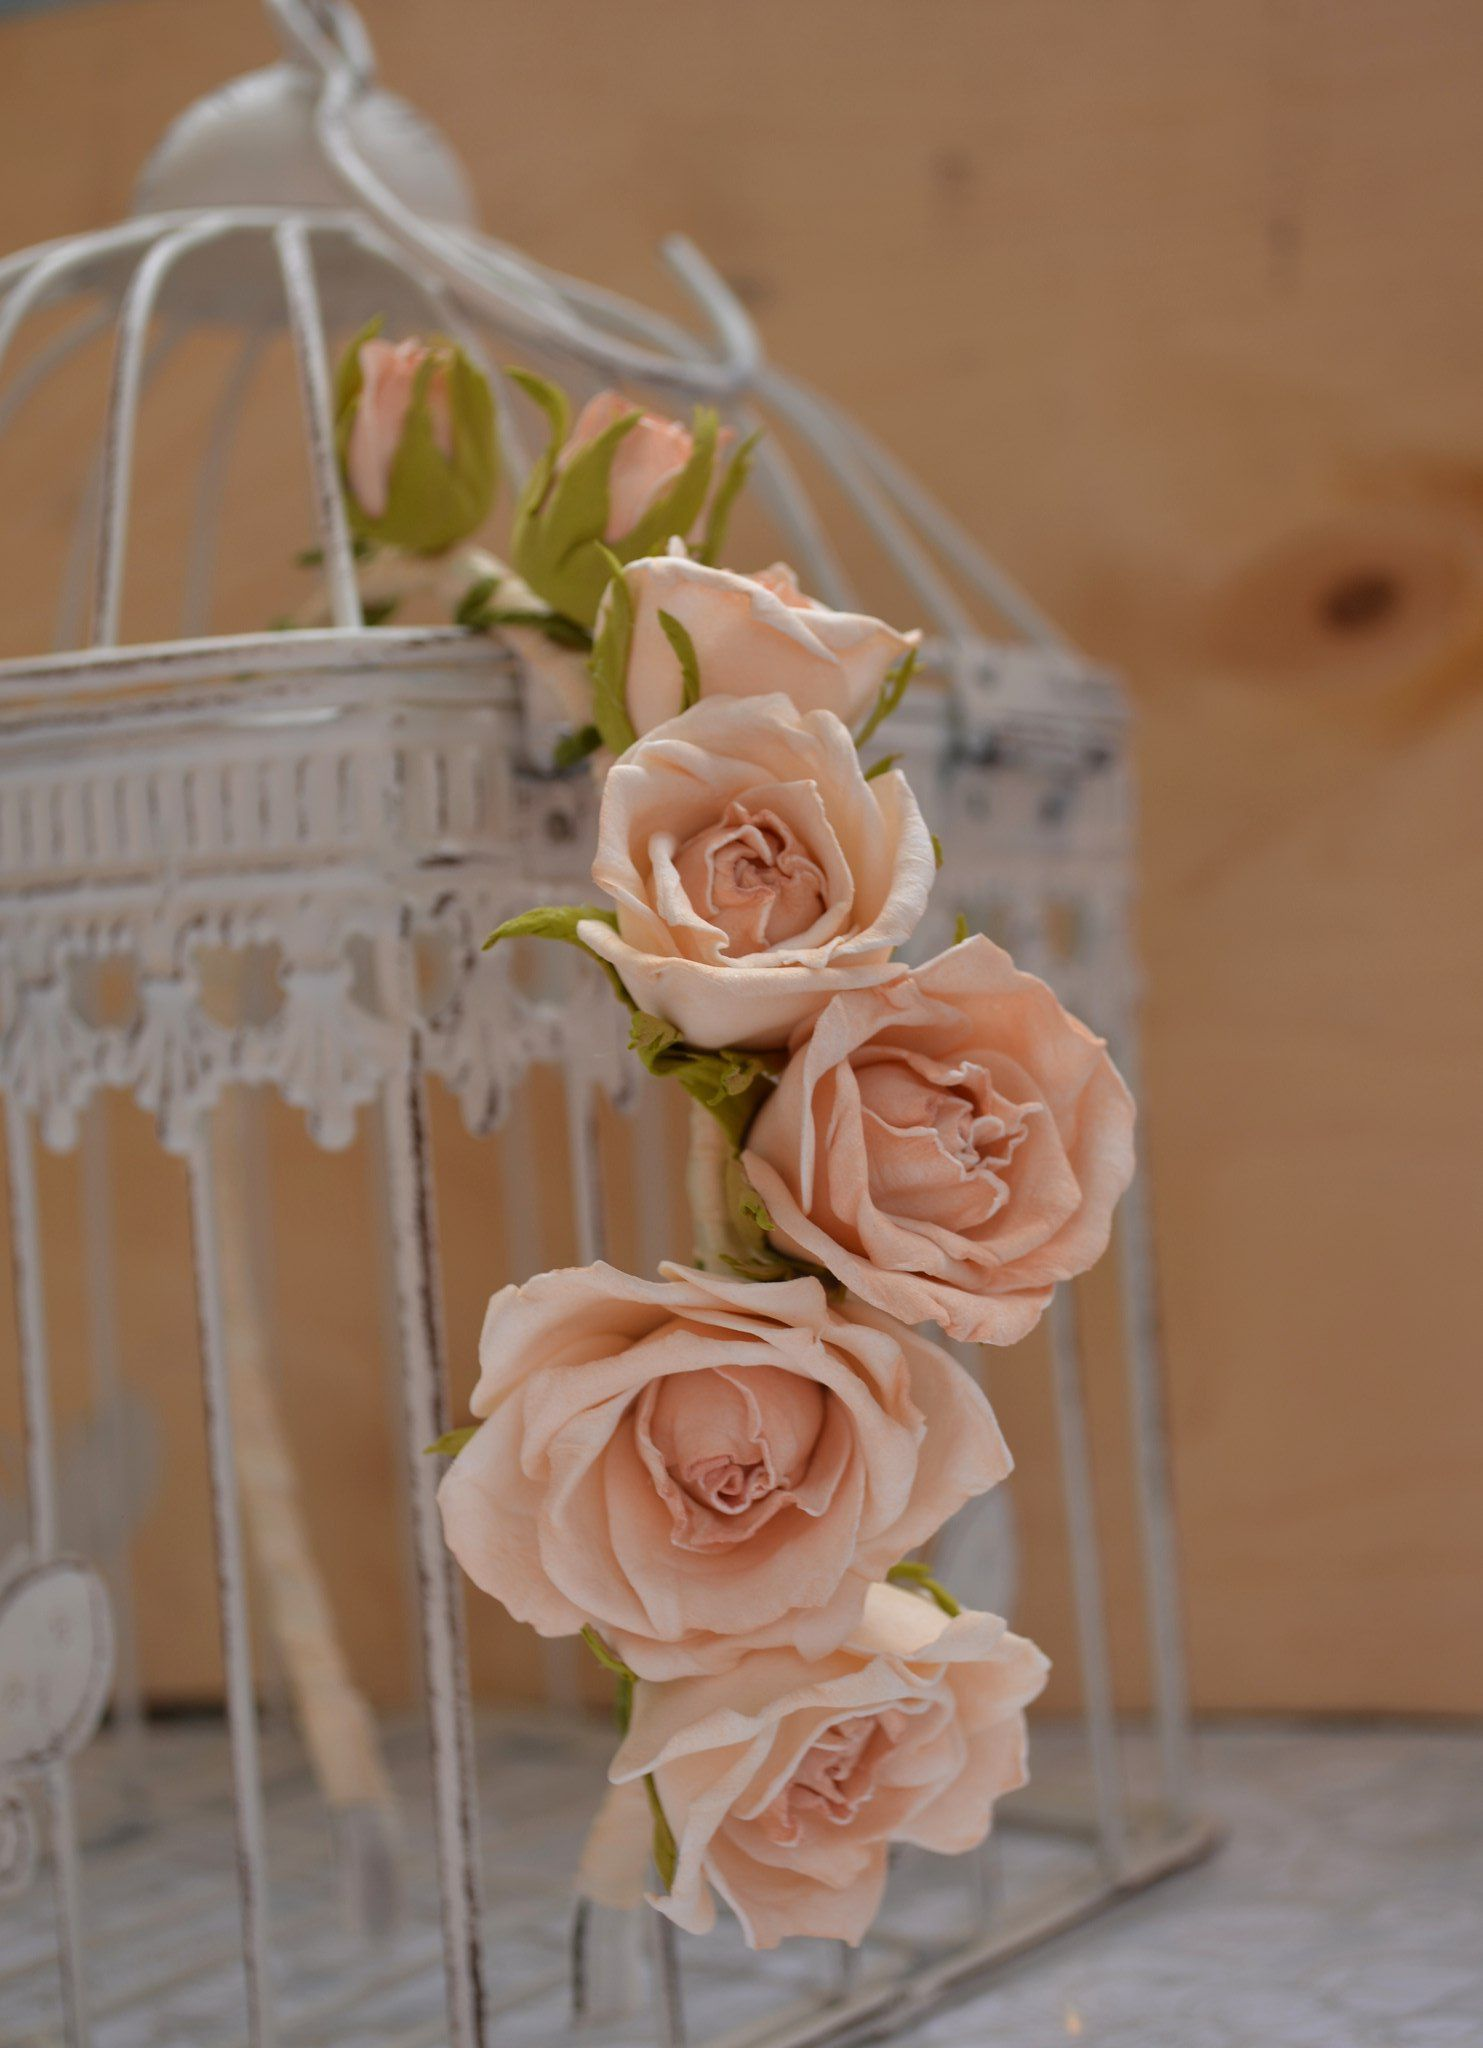 roses flowers style ivory composition wedding